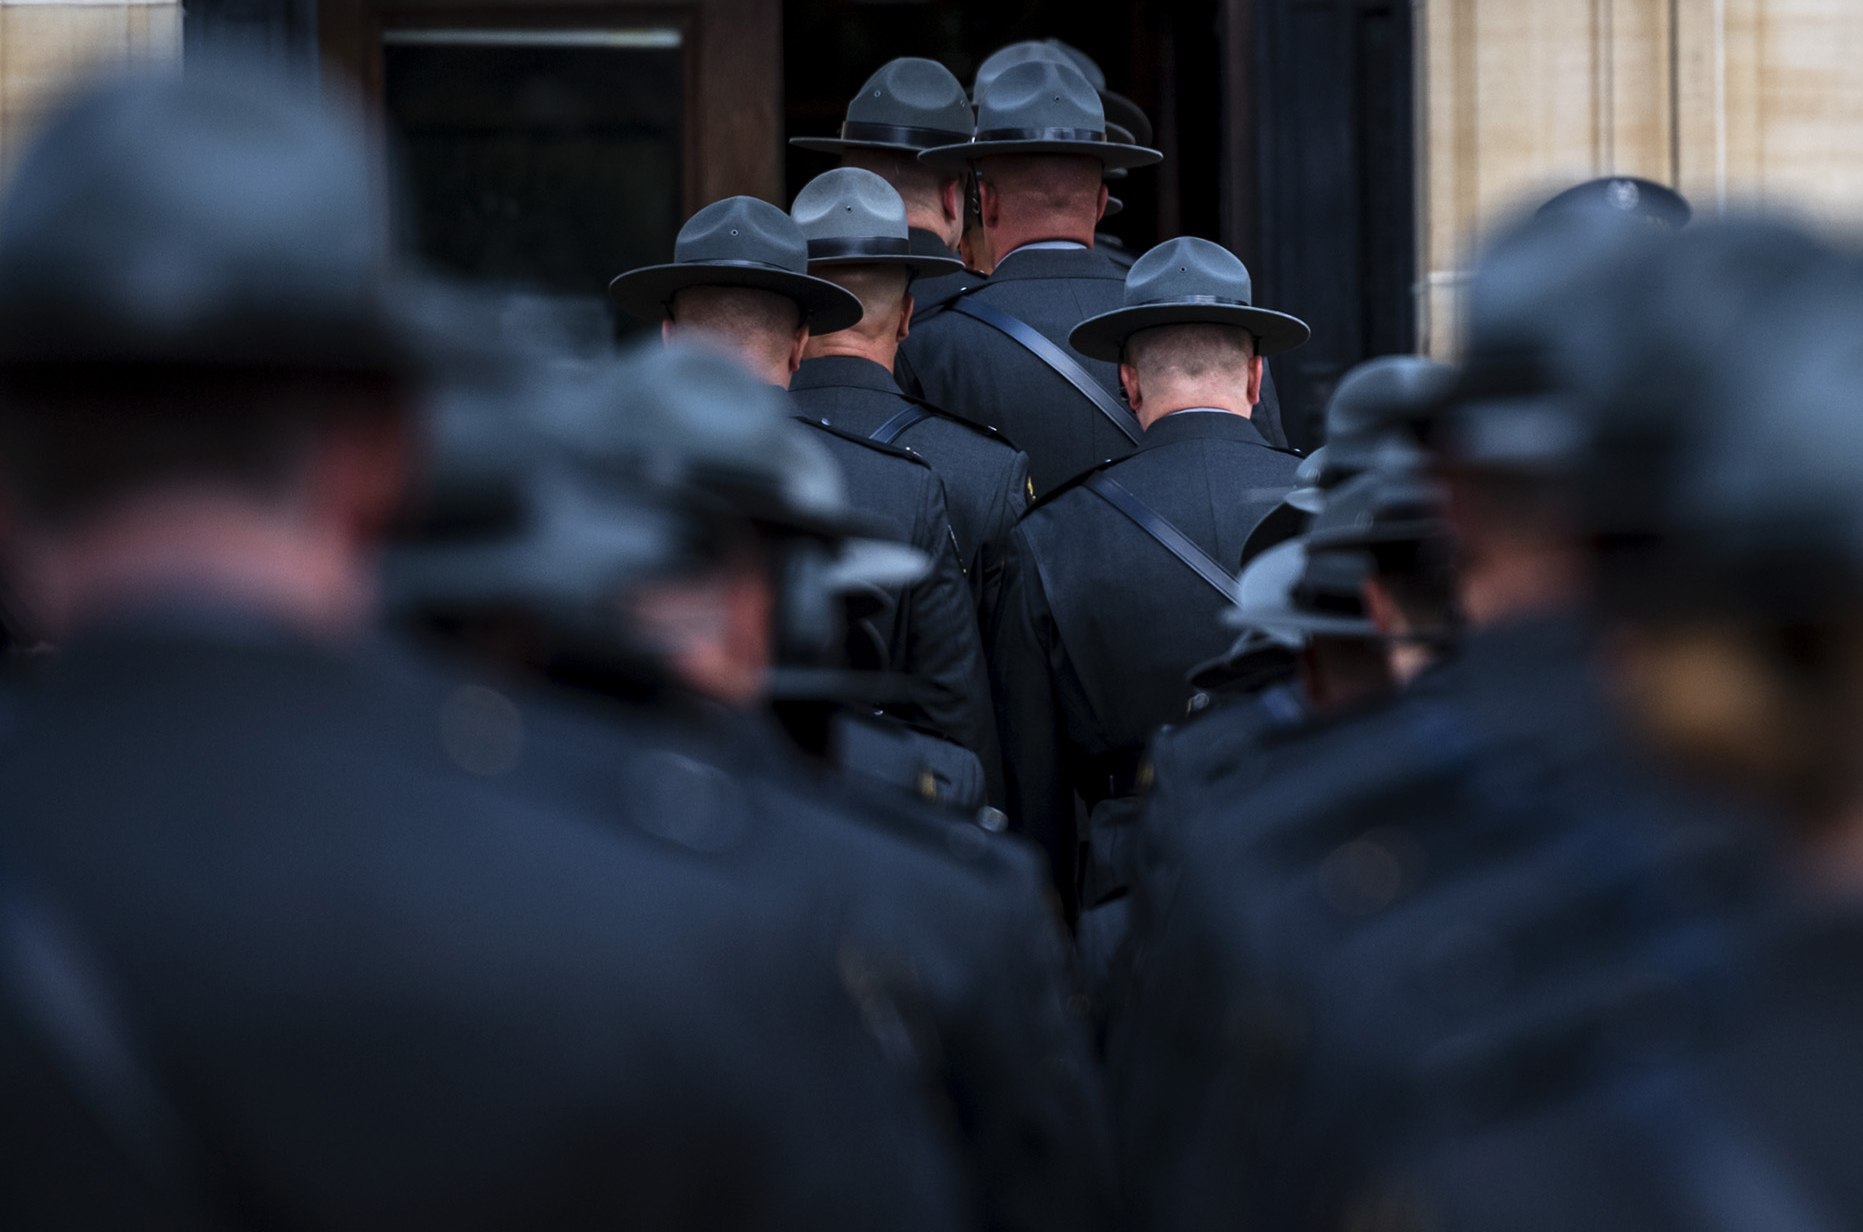 Remembering Officer Calvin Hall – Pittsburgh: In Focus